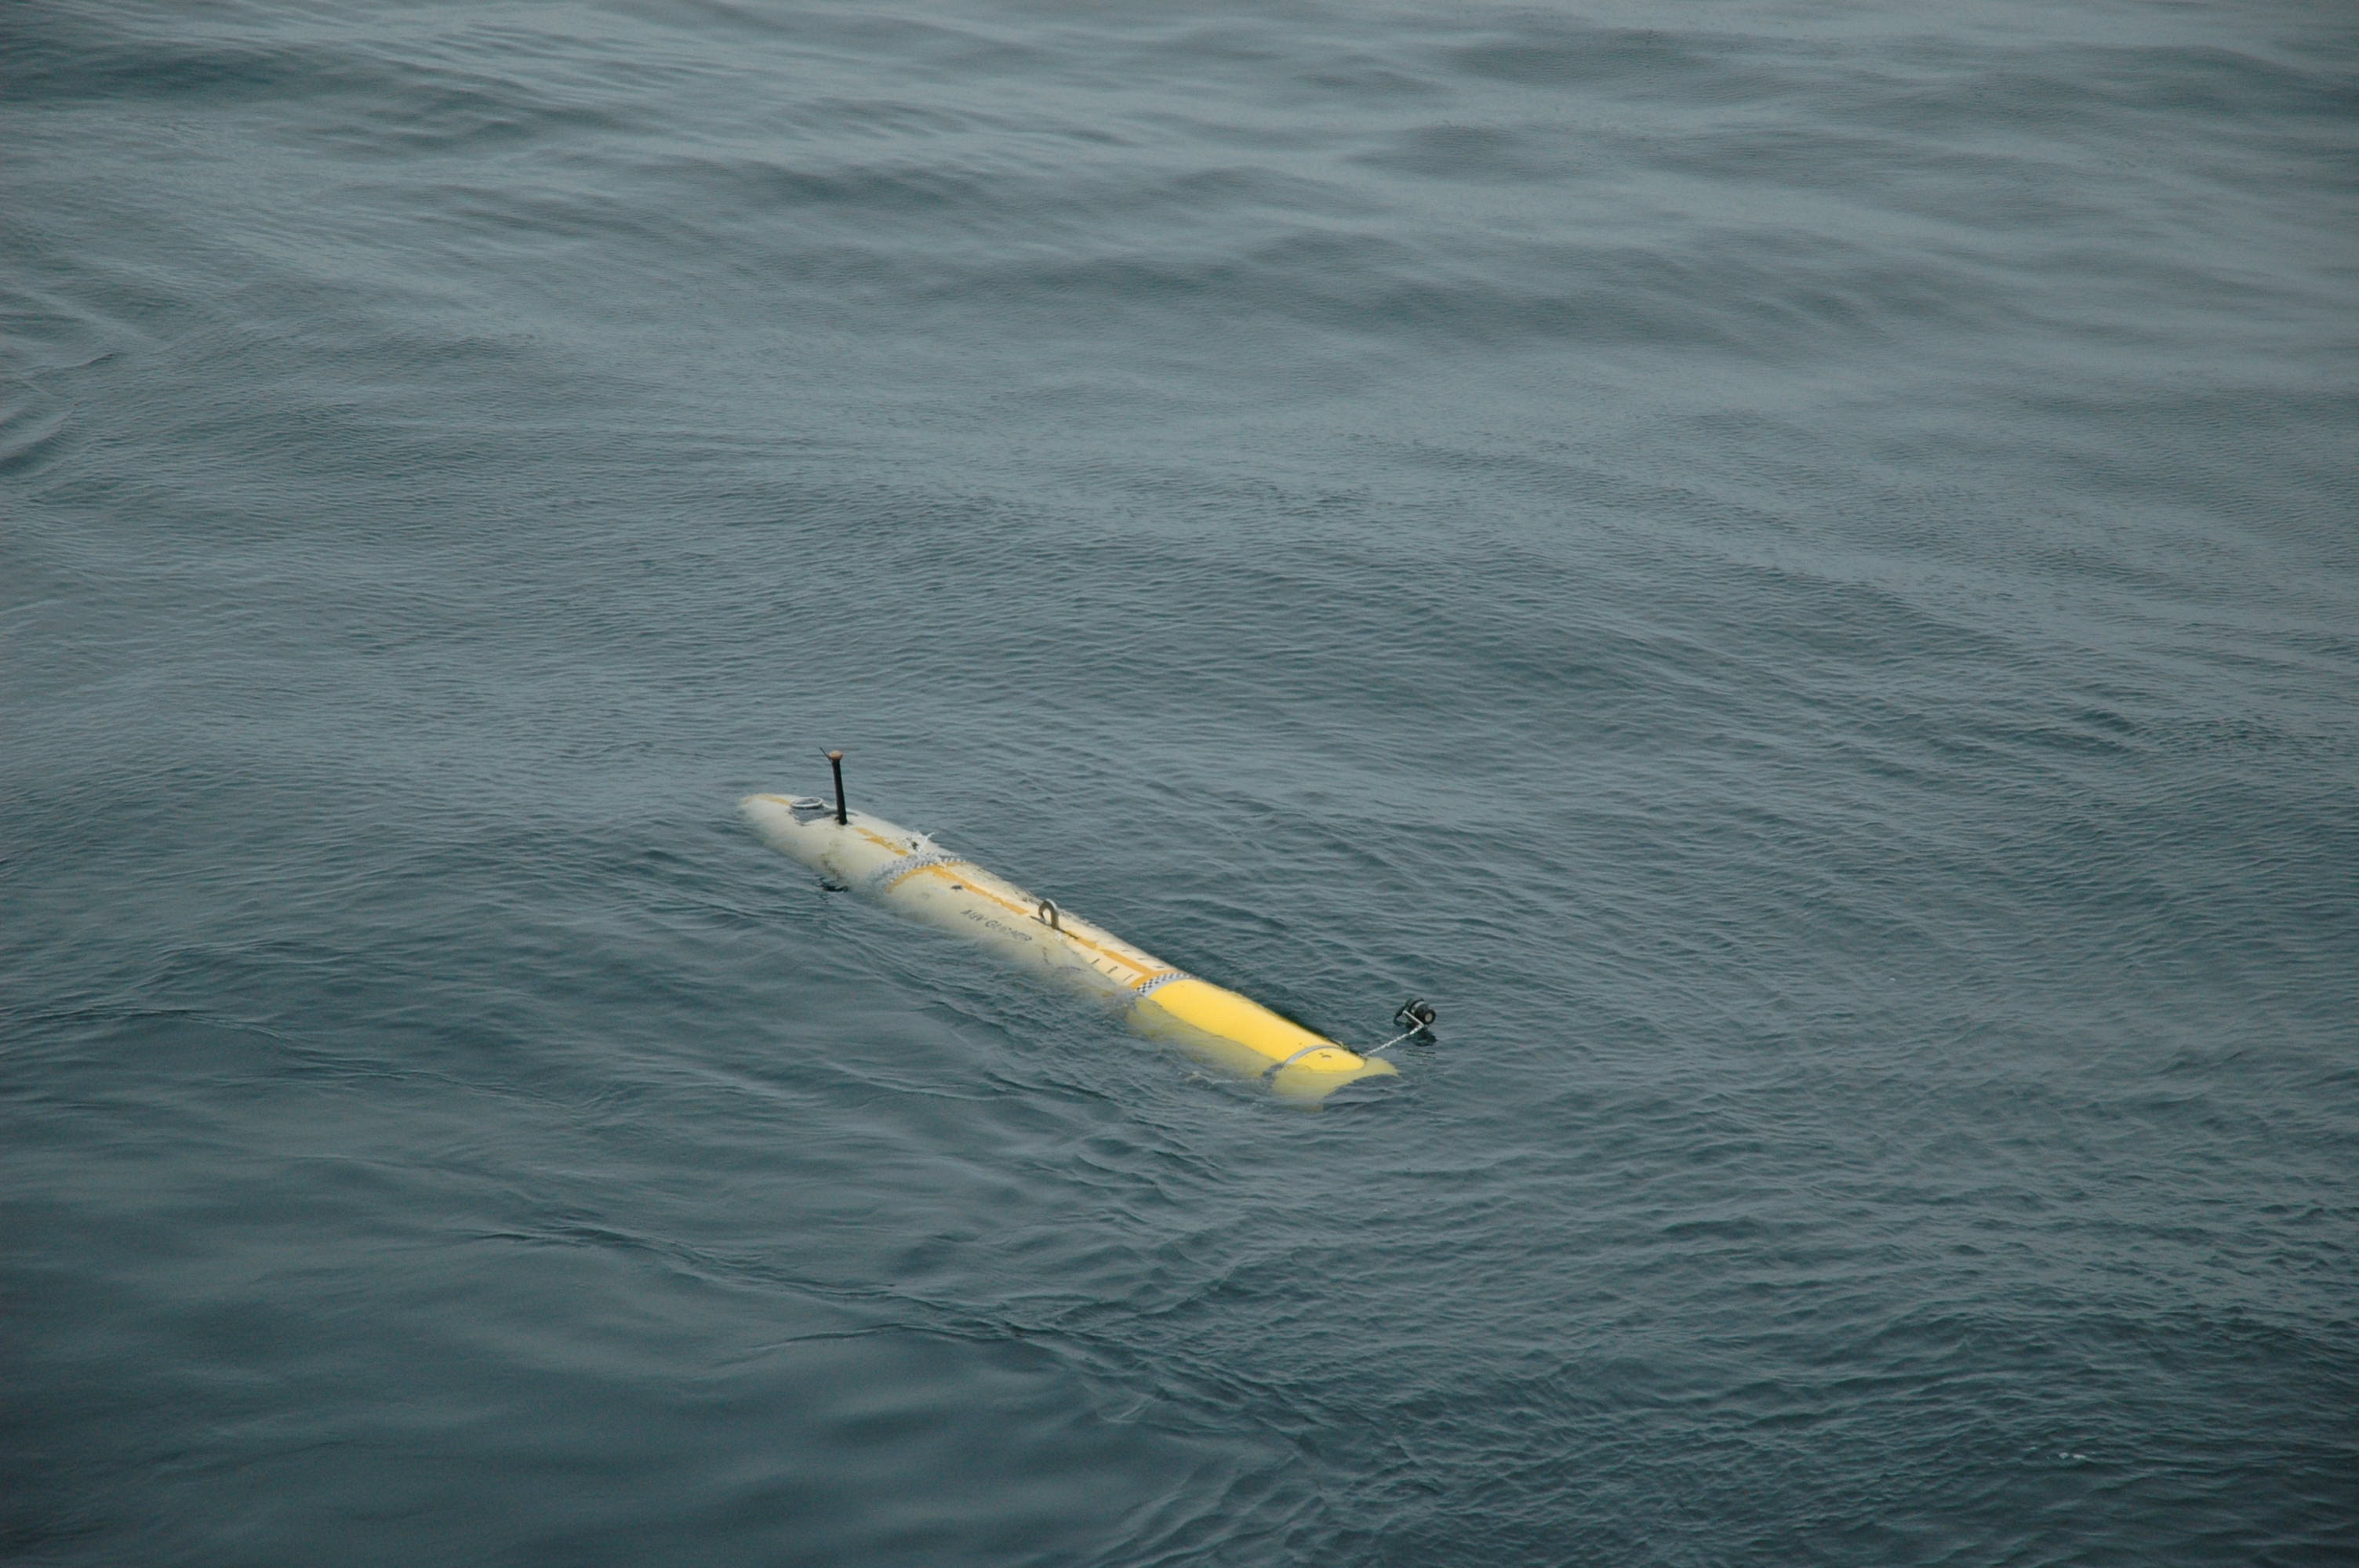 The i2MAP is released and on its own to begin its survey in the ocean.